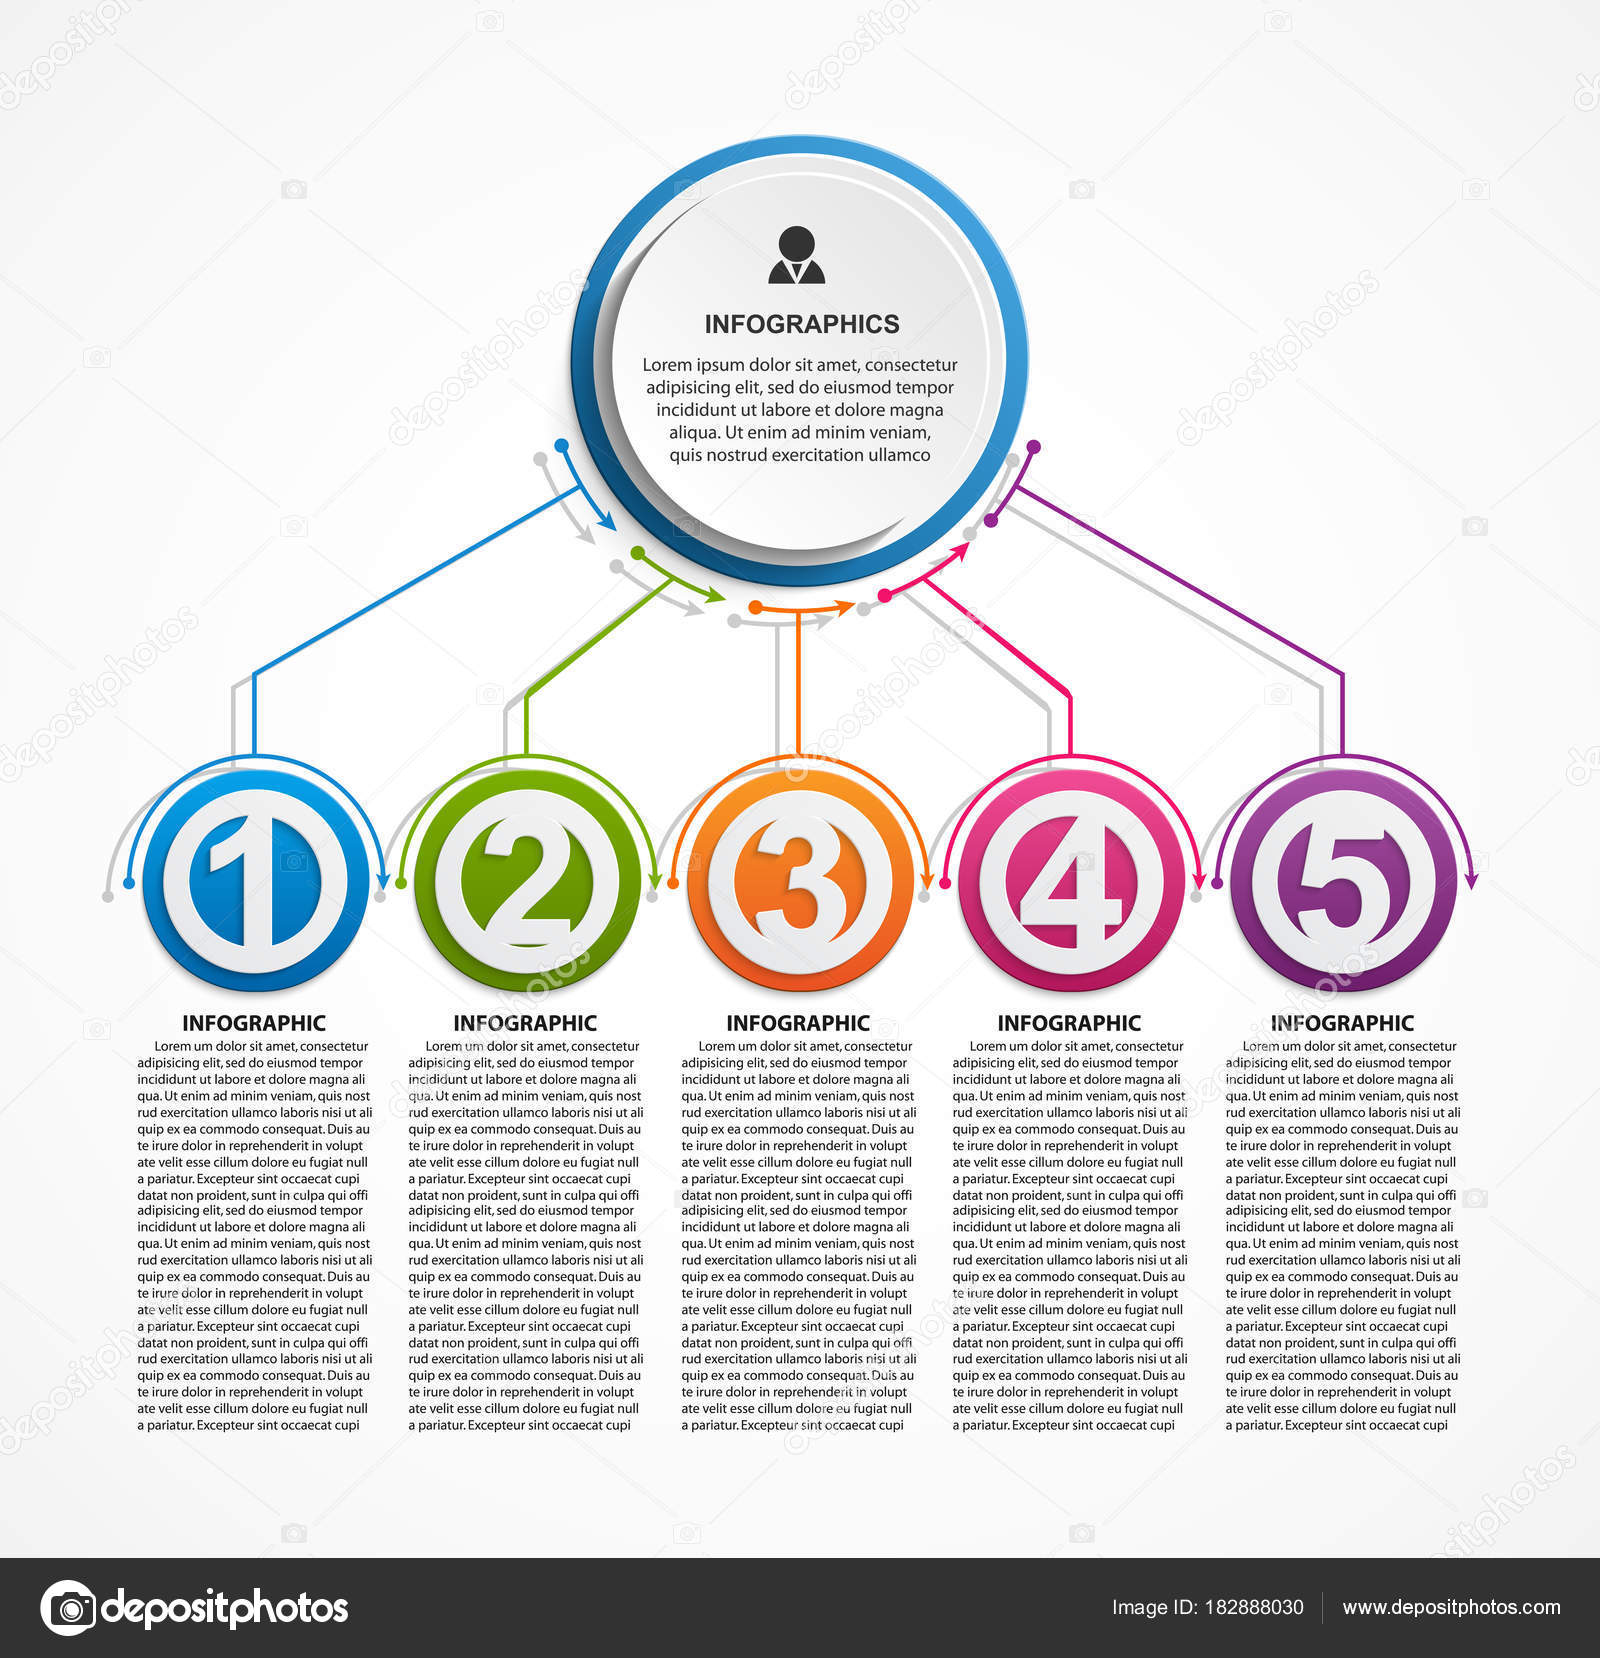 Attractive timeline poster template pattern wordpress for Grindhouse poster template